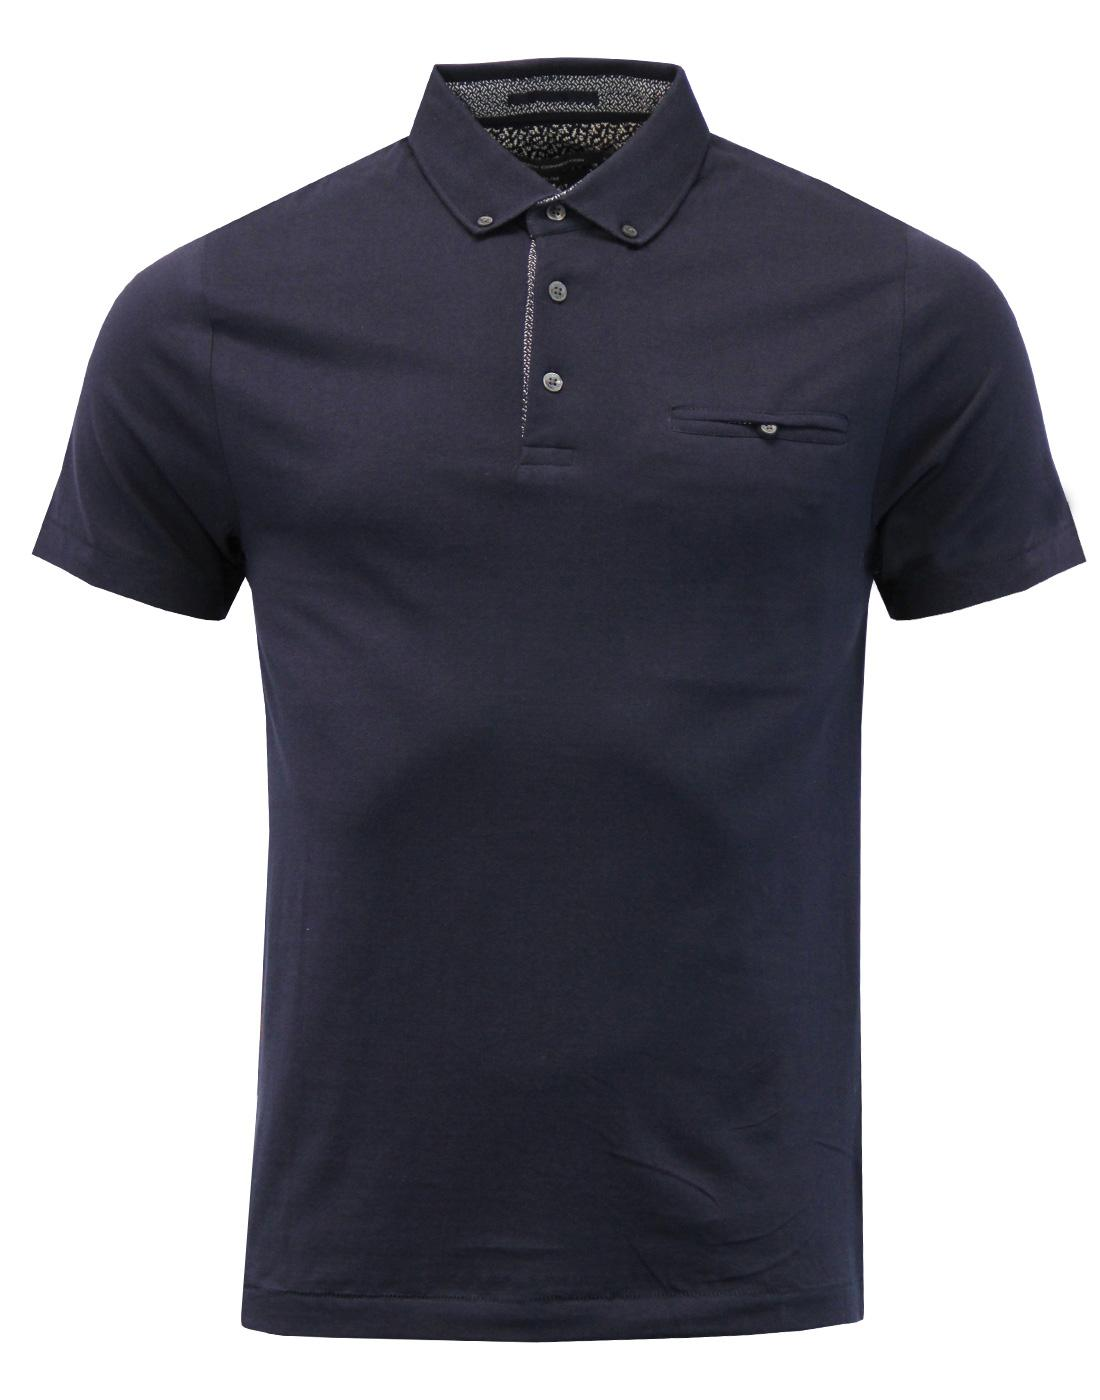 FRENCH CONNECTION 60s Mod Micro Dash Trim Polo Top